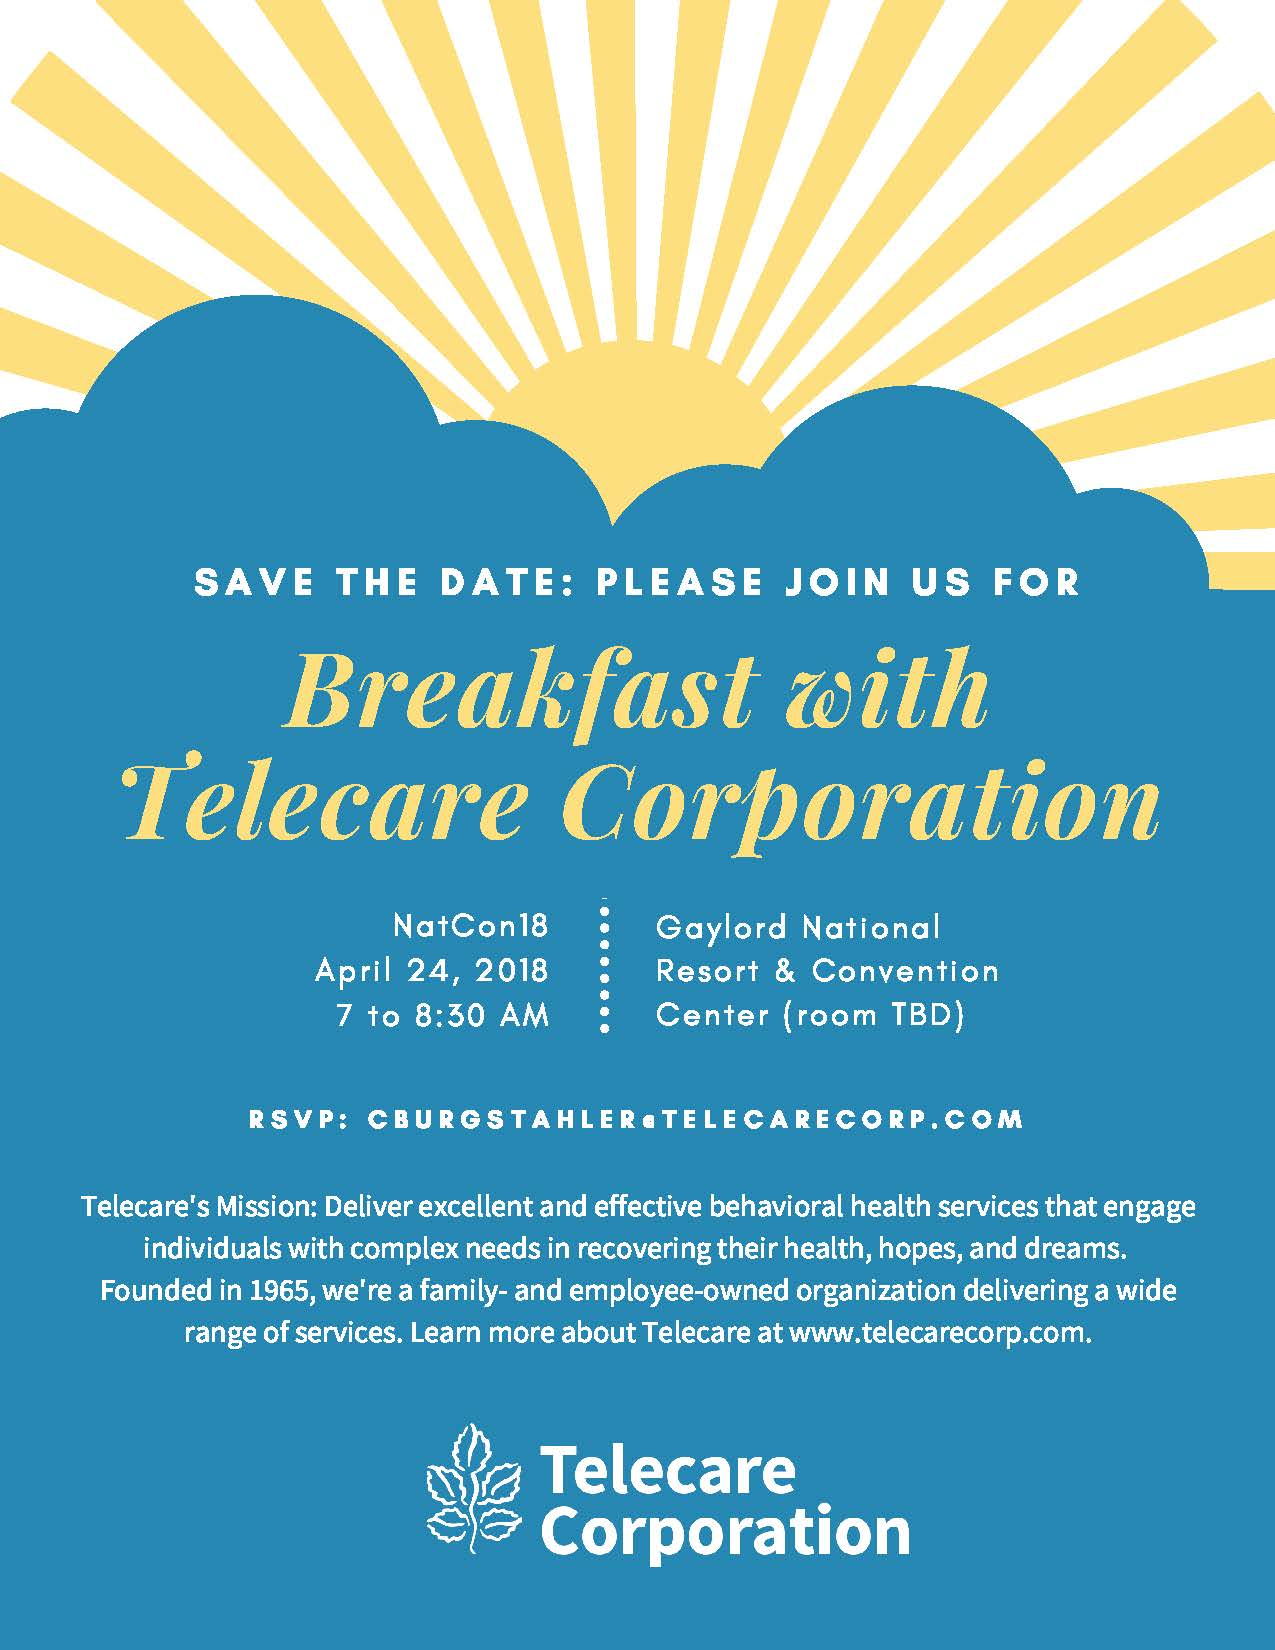 Telecare NatCon18 Breakfast Invitation v2.jpg